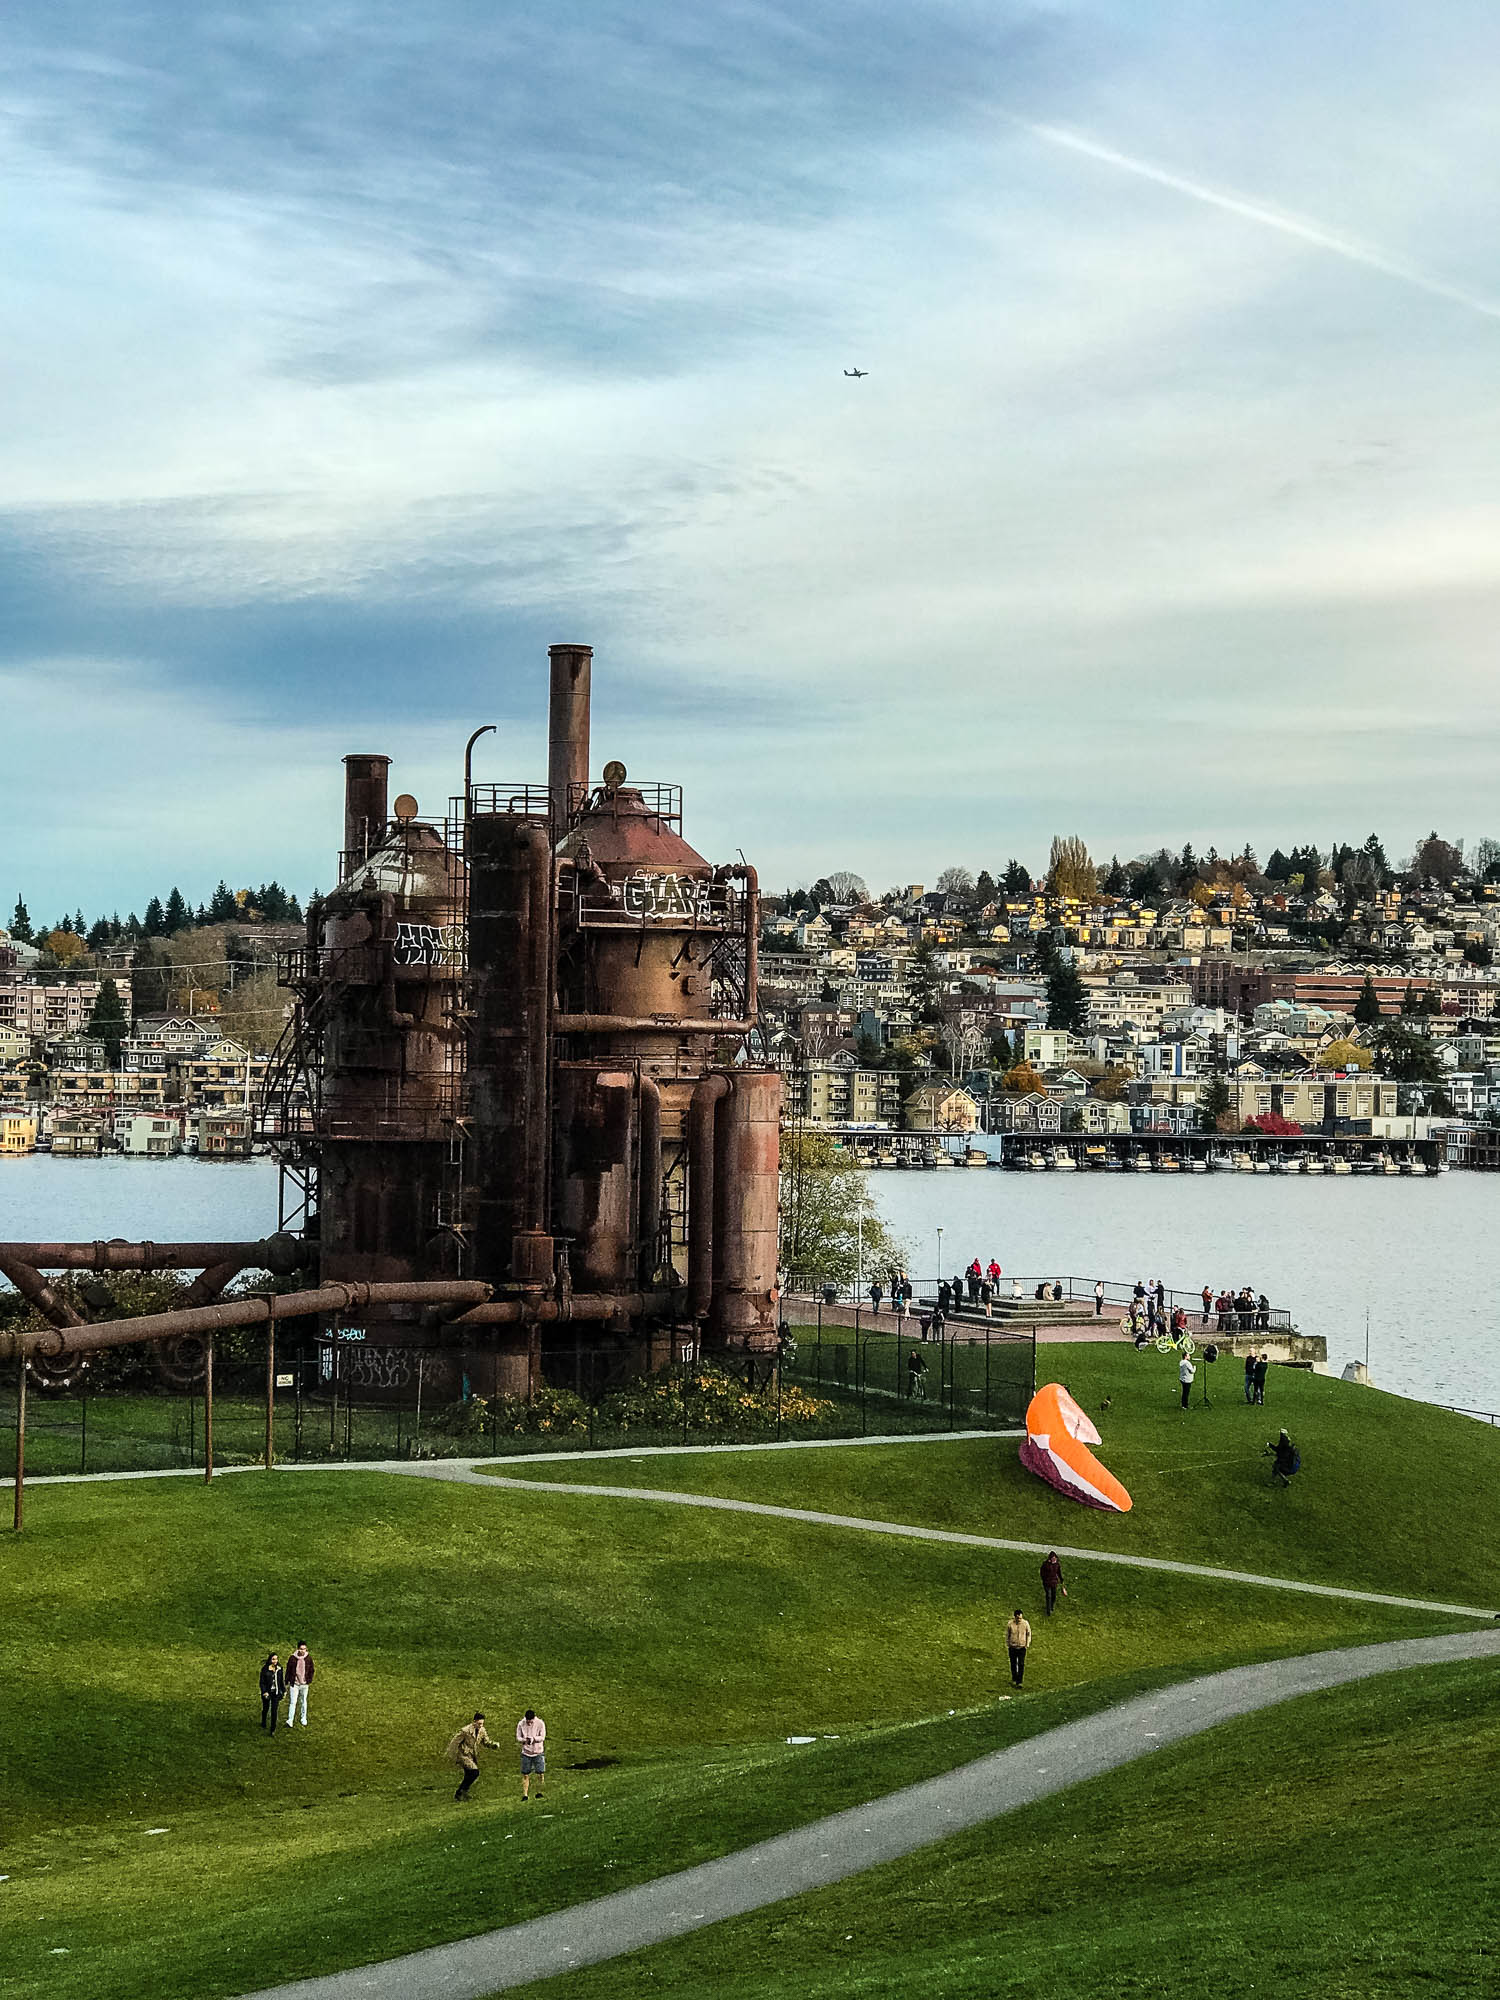 MYBELONGING-SEATTLE-CITY-GUIDE-UBER-X-TRAVEL-PHOTOGRAPHY-FOLIAGE-WASHINGTON-ARBORETUM-GASWORKS-PARK-4.jpg